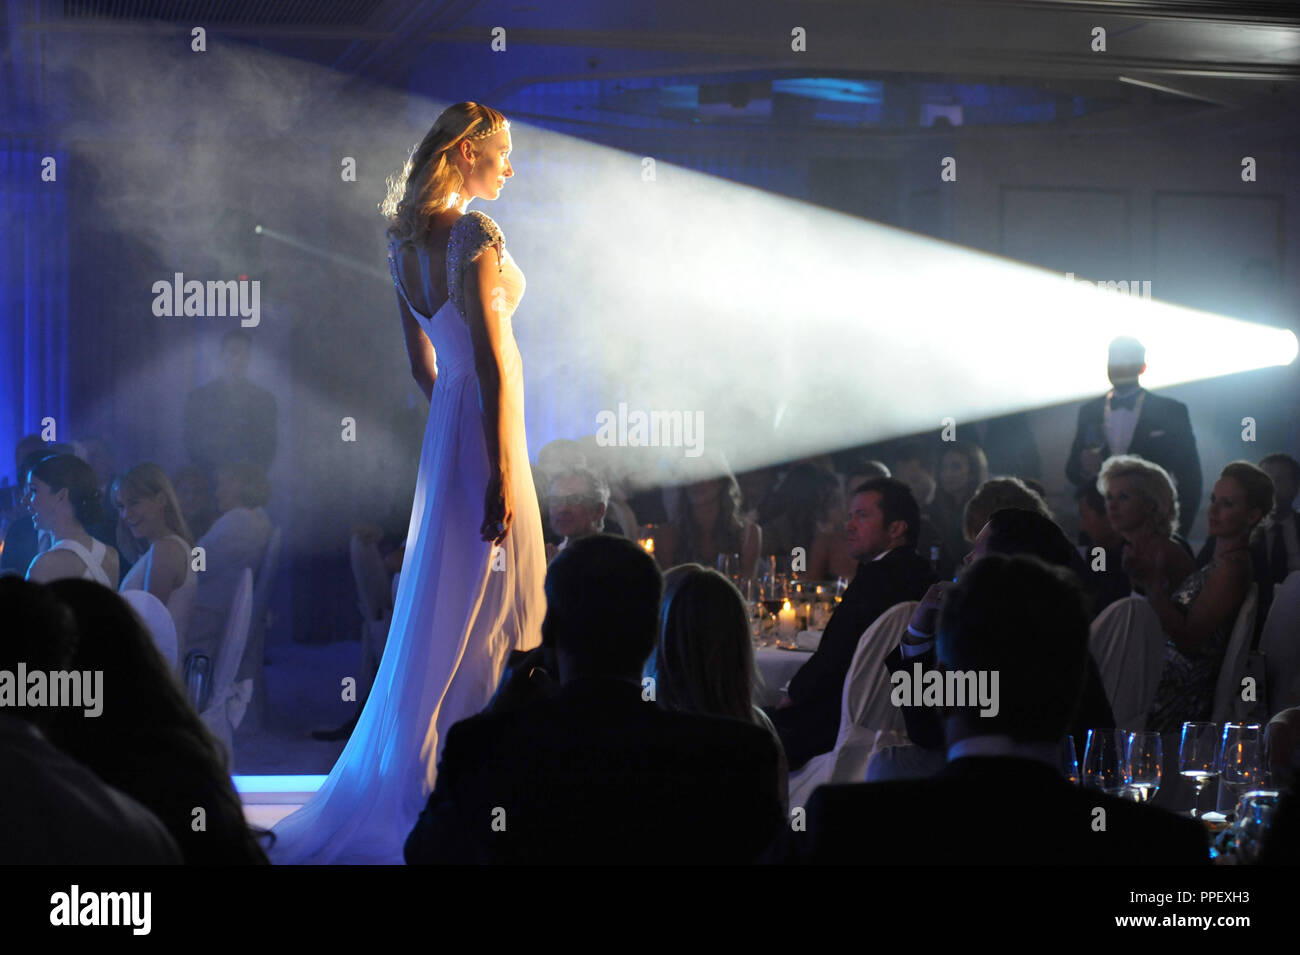 Start up party at the Hotel Vier Jahreszeiten. The new online fashion portal 'Dresscoded' is being presented by Natasha Gruen. Glamorous dresses can be rented on the site. - Stock Image